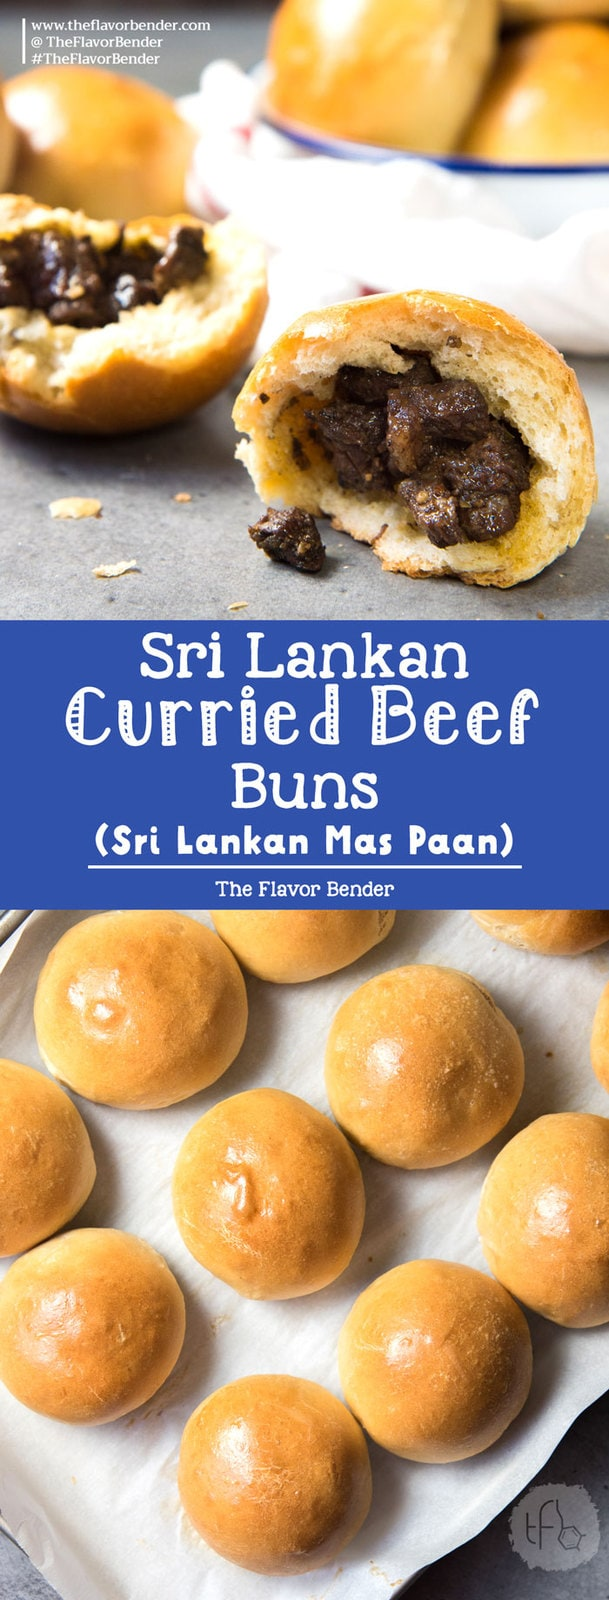 Sri Lankan Curried Beef buns - These Sri Lankan meat buns are so versatile and flavorful. Pillowy bread stuffed with curried beef. Great on the go breakfast idea, lunch or snack.